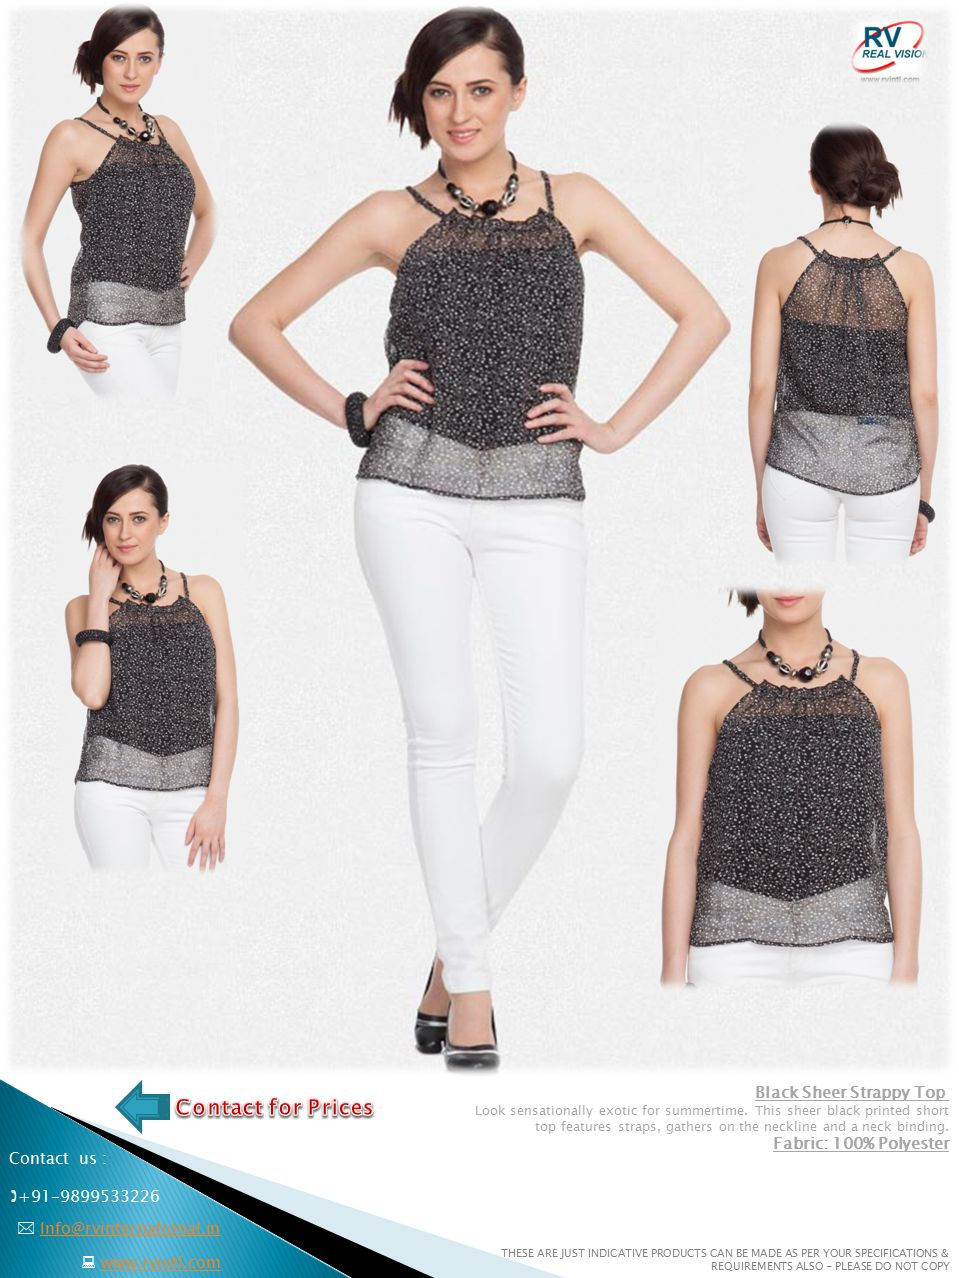  +91-9899533226  www.rvintl.comwww.rvintl.com  Info@rvinternational.inInfo@rvinternational.in Contact us : THESE ARE JUST INDICATIVE PRODUCTS CAN BE MADE AS PER YOUR SPECIFICATIONS & REQUIREMENTS ALSO - PLEASE DO NOT COPY Black Sheer Strappy Top Look sensationally exotic for summertime.